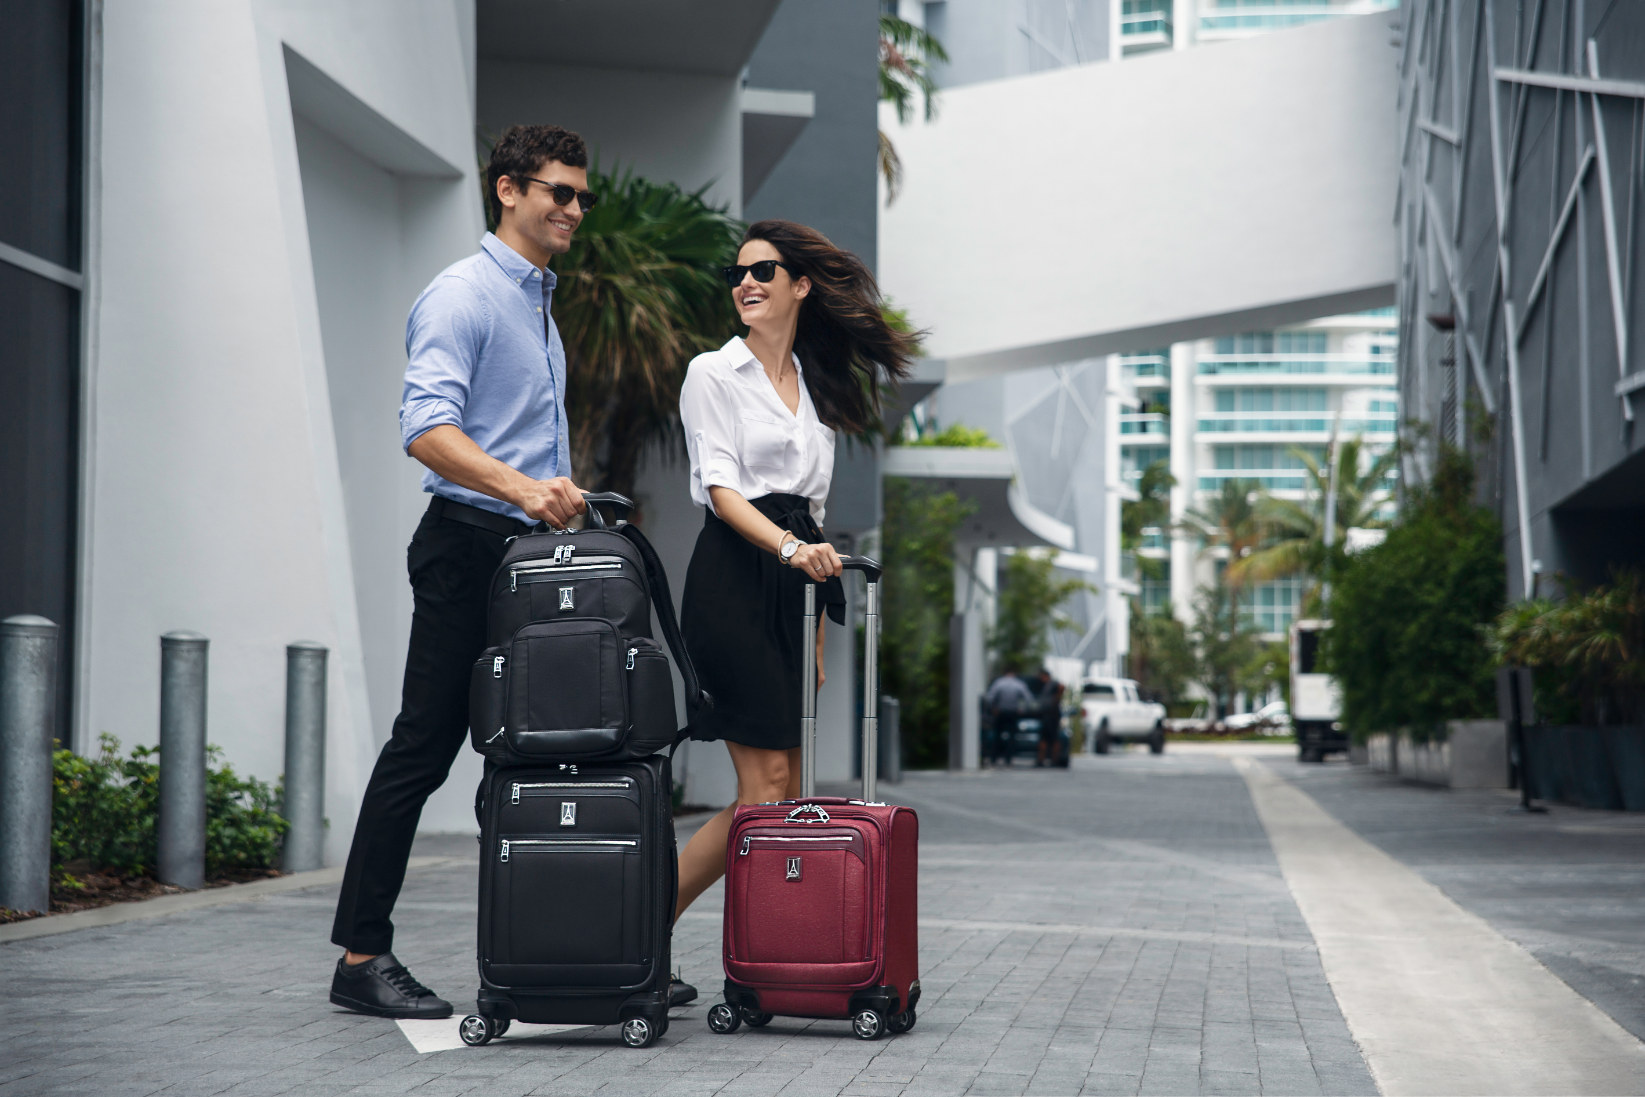 THE BENEFITS OF SOFTSIDE LUGGAGE VS HARDSIDE LUGGAGE